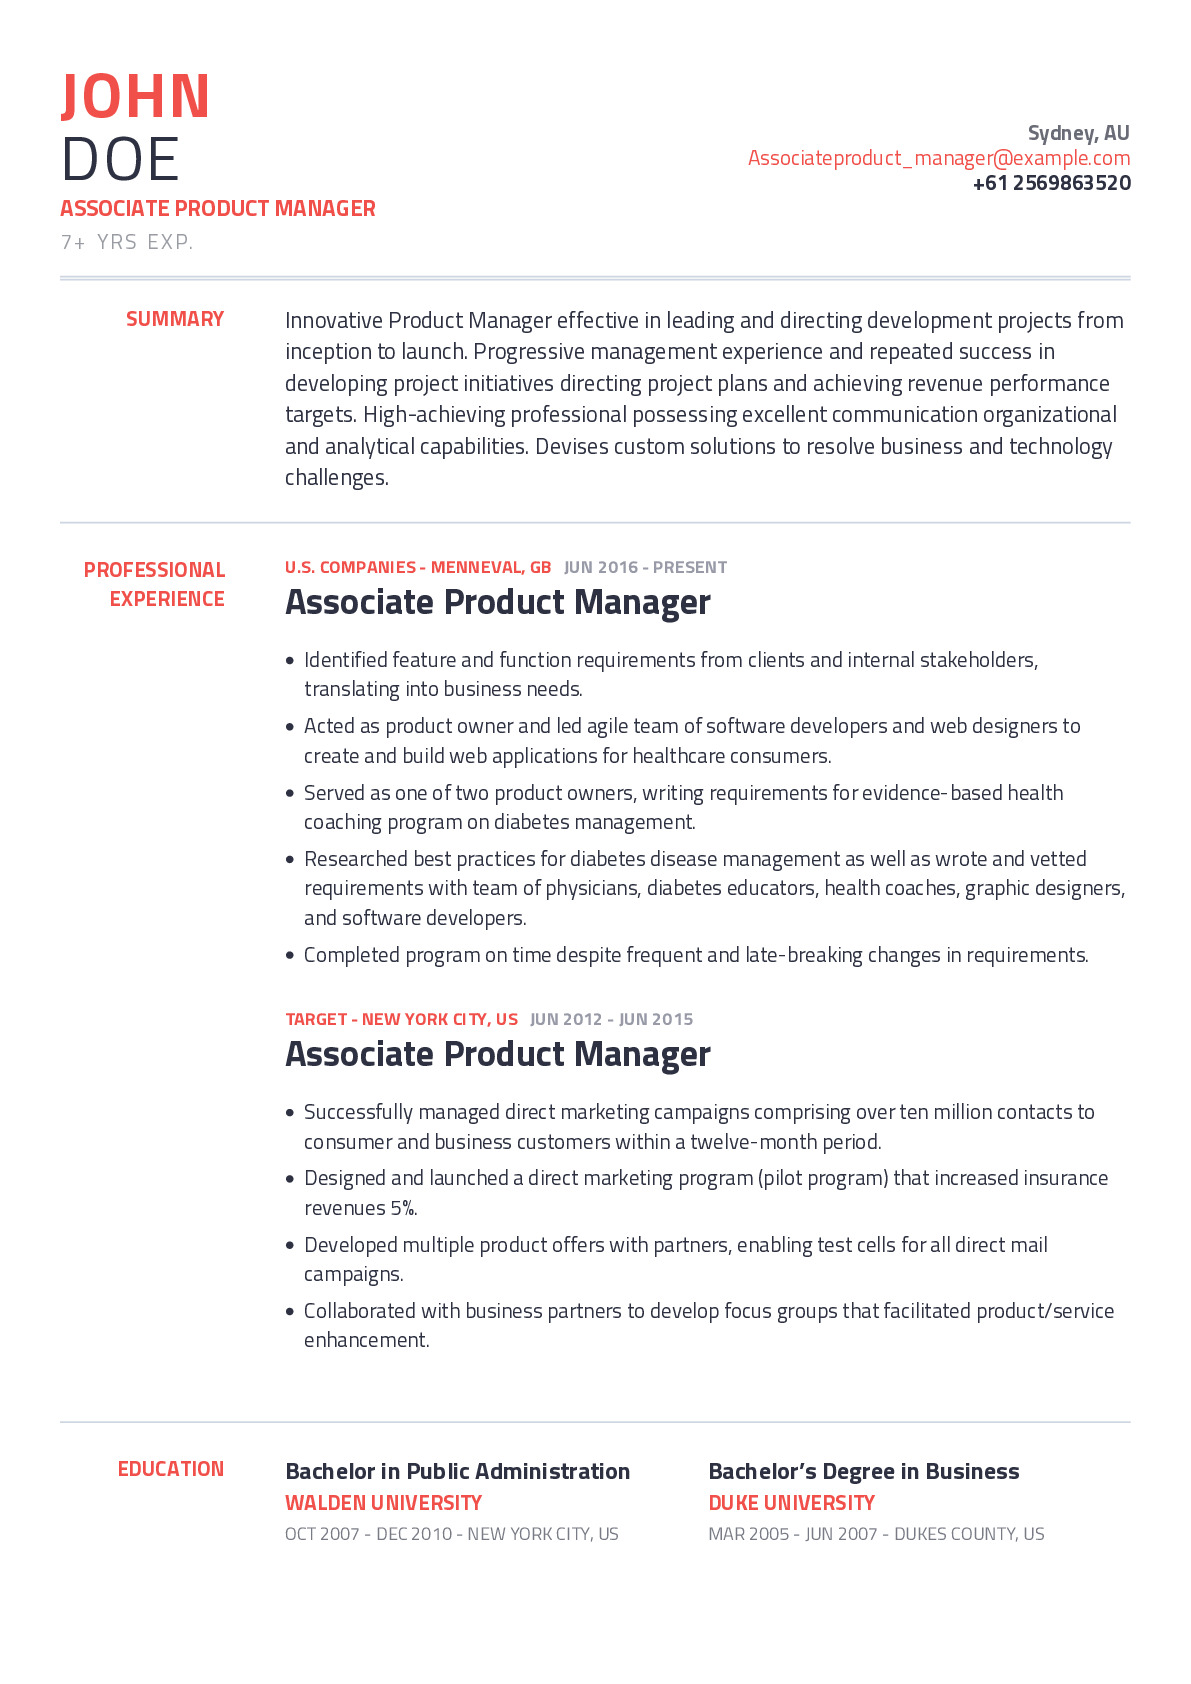 associate product manager resume example with content